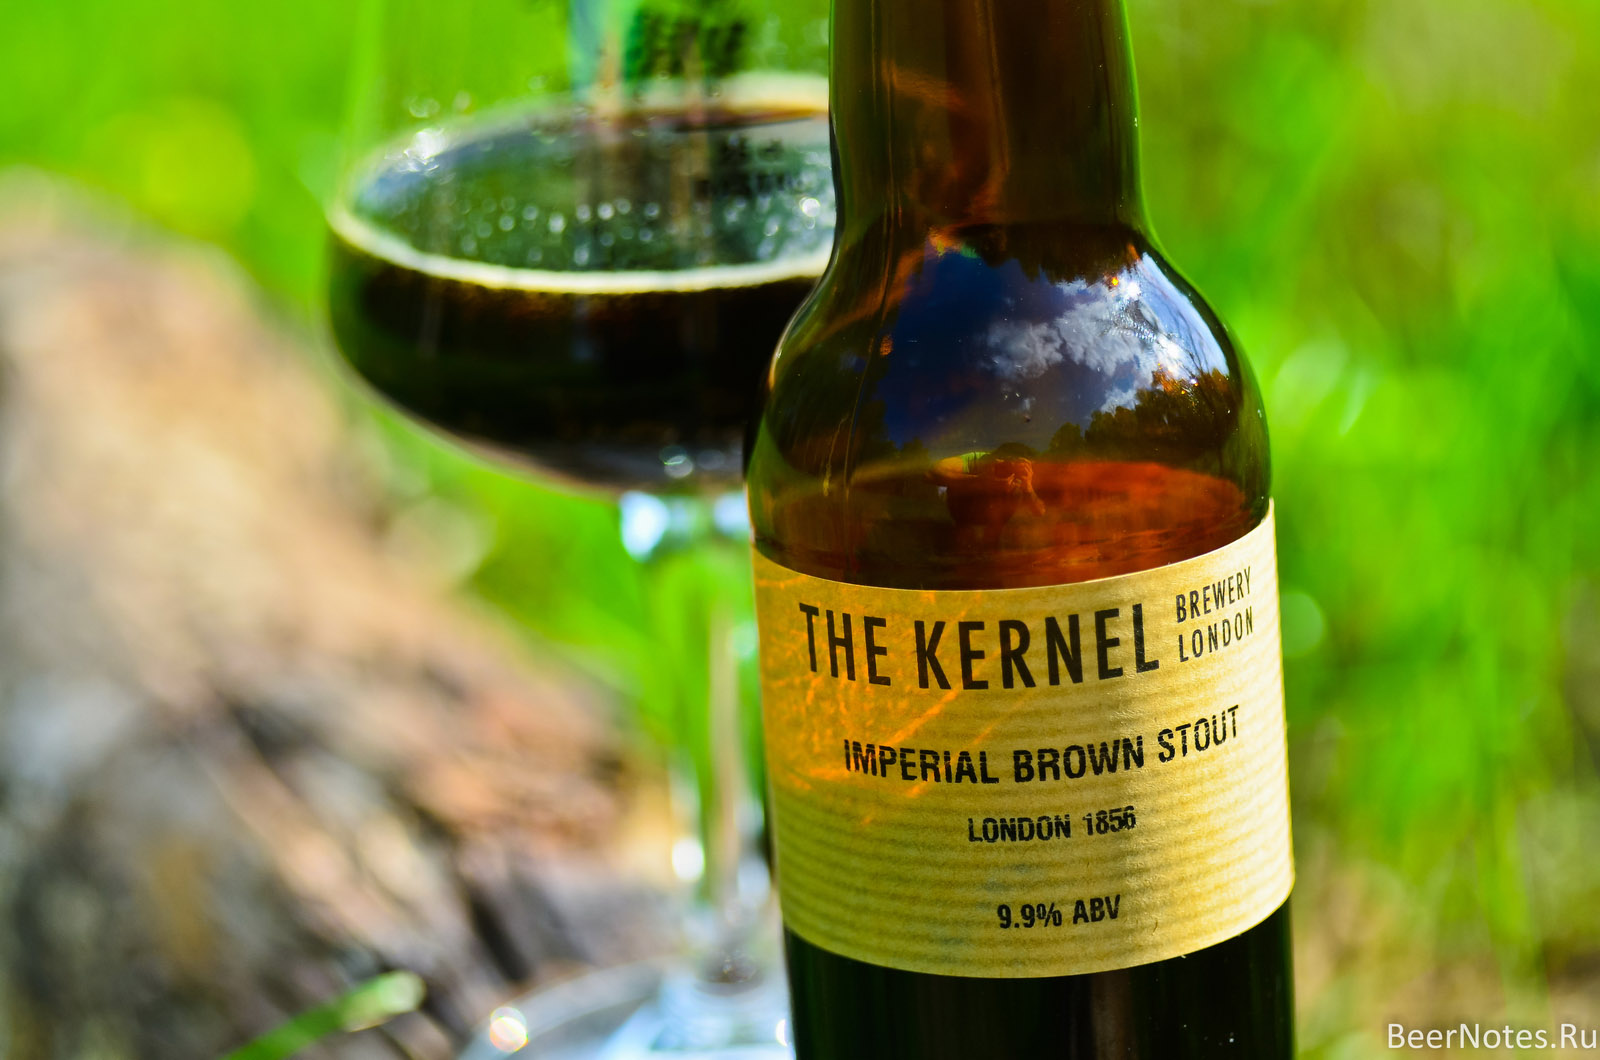 The Kernel Imperial Brown Stout London 1856-5